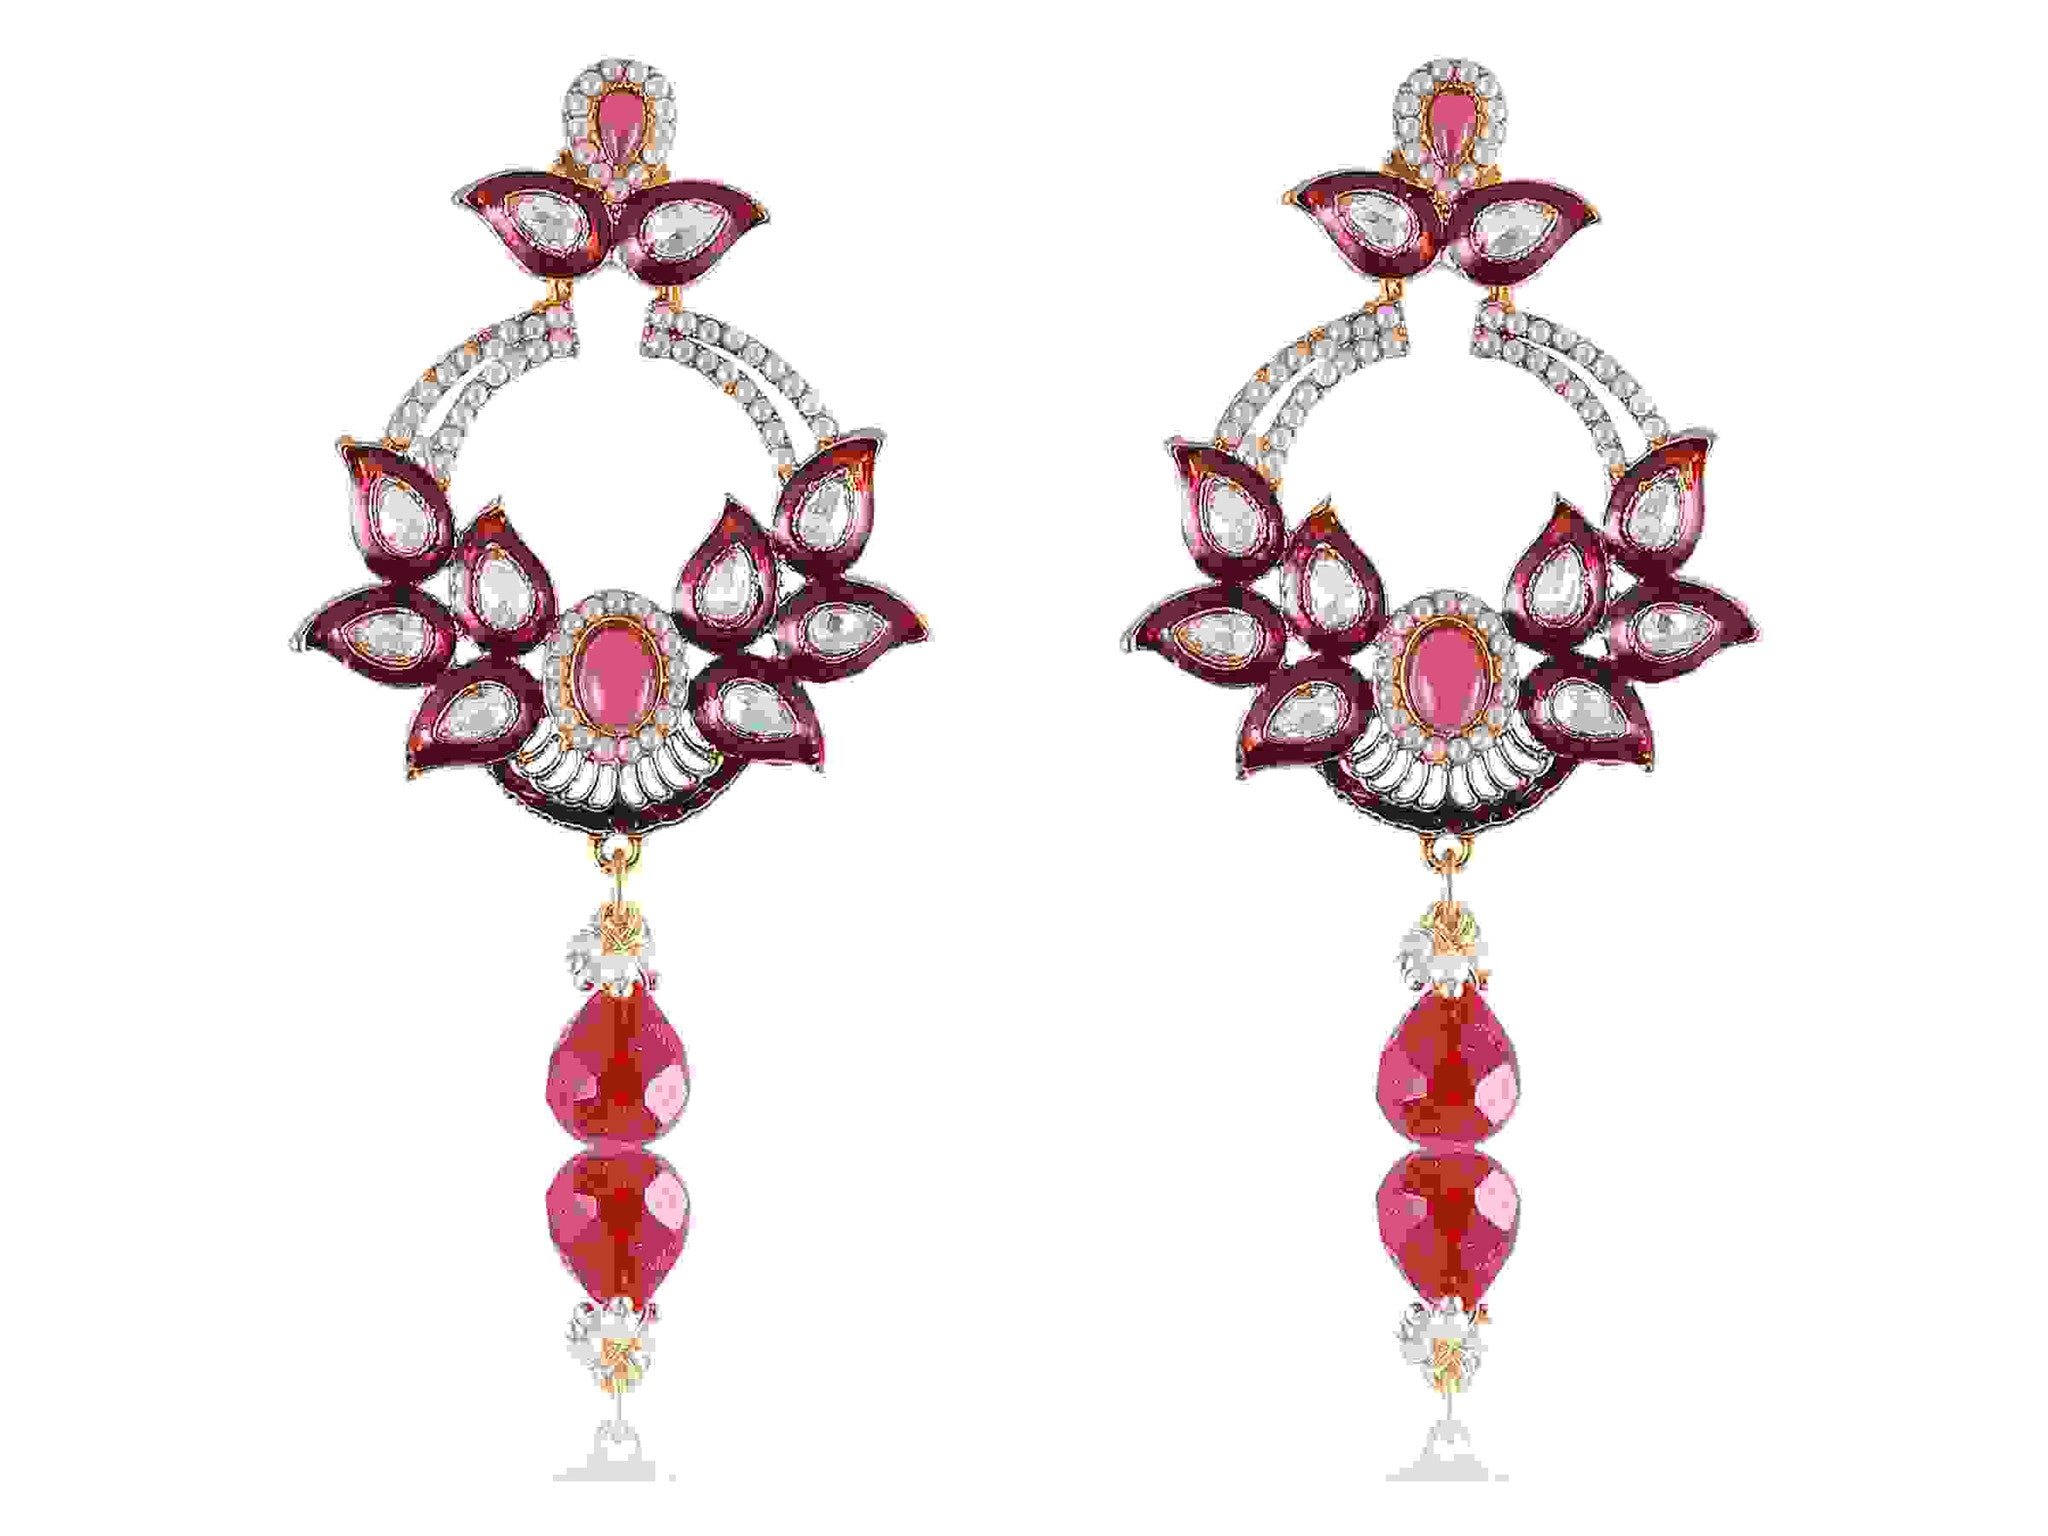 Embellished Danglers Polki Earrings in Pink, Maroon and White Colour - PO755